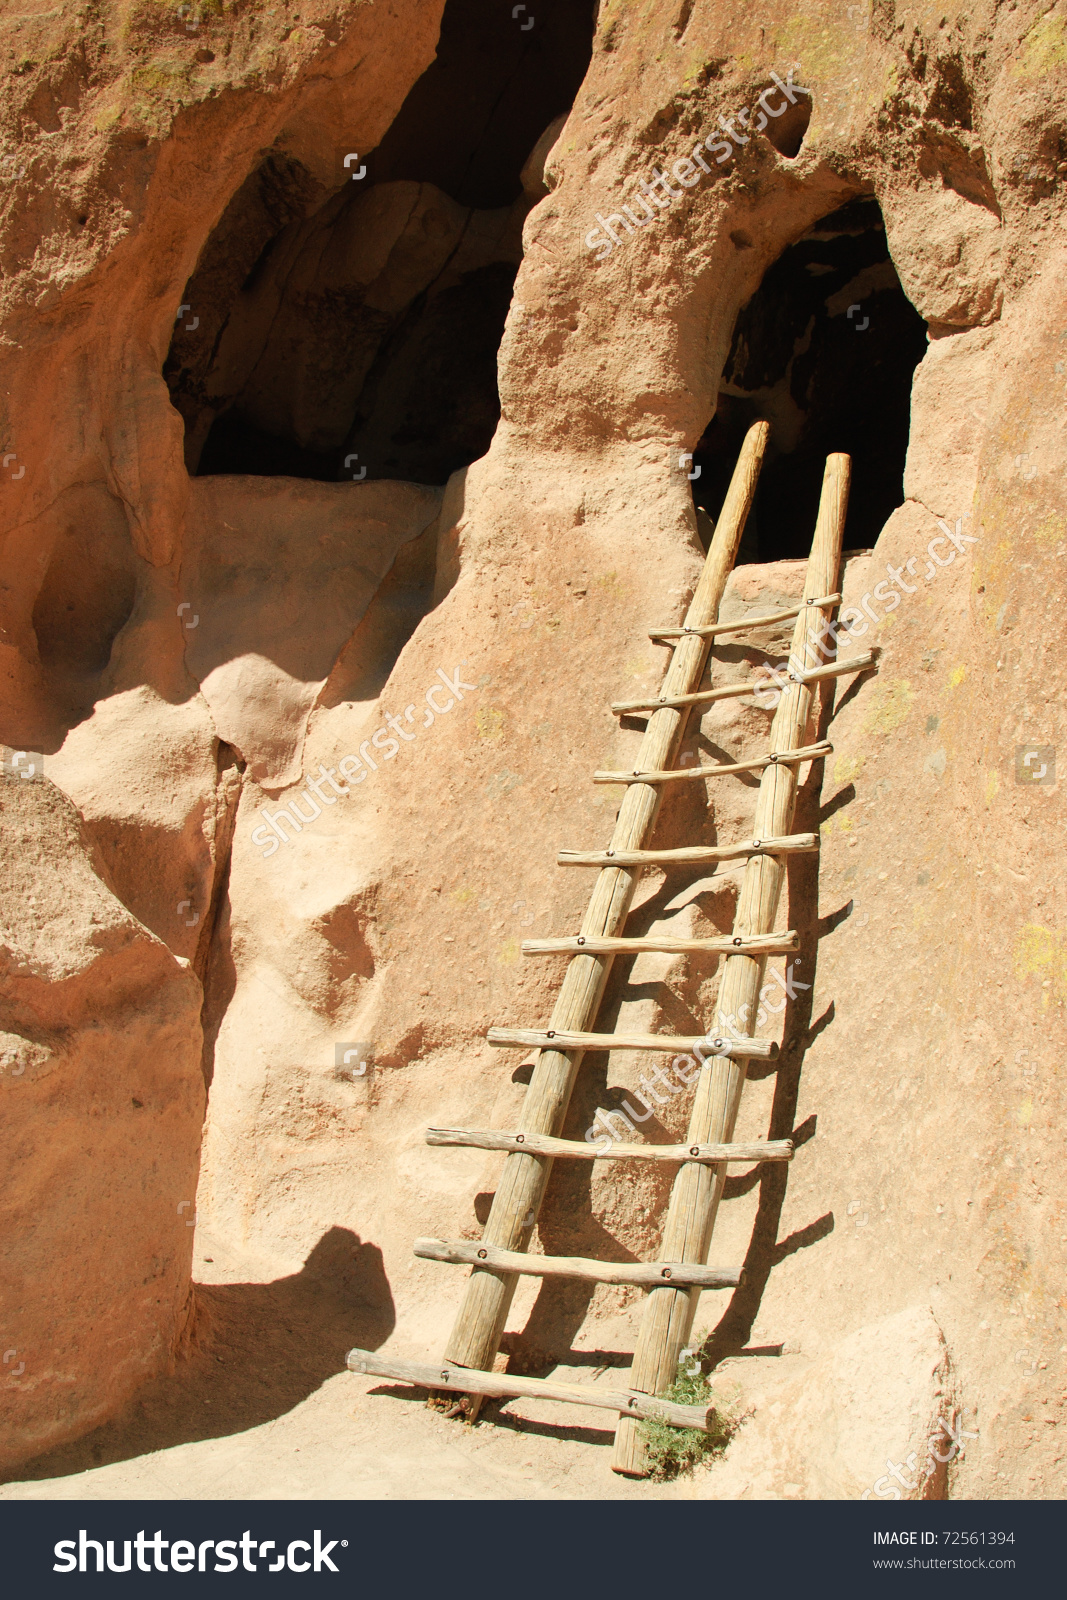 Wooden Ladder Native American Indian Cliff Stock Photo 72561394.